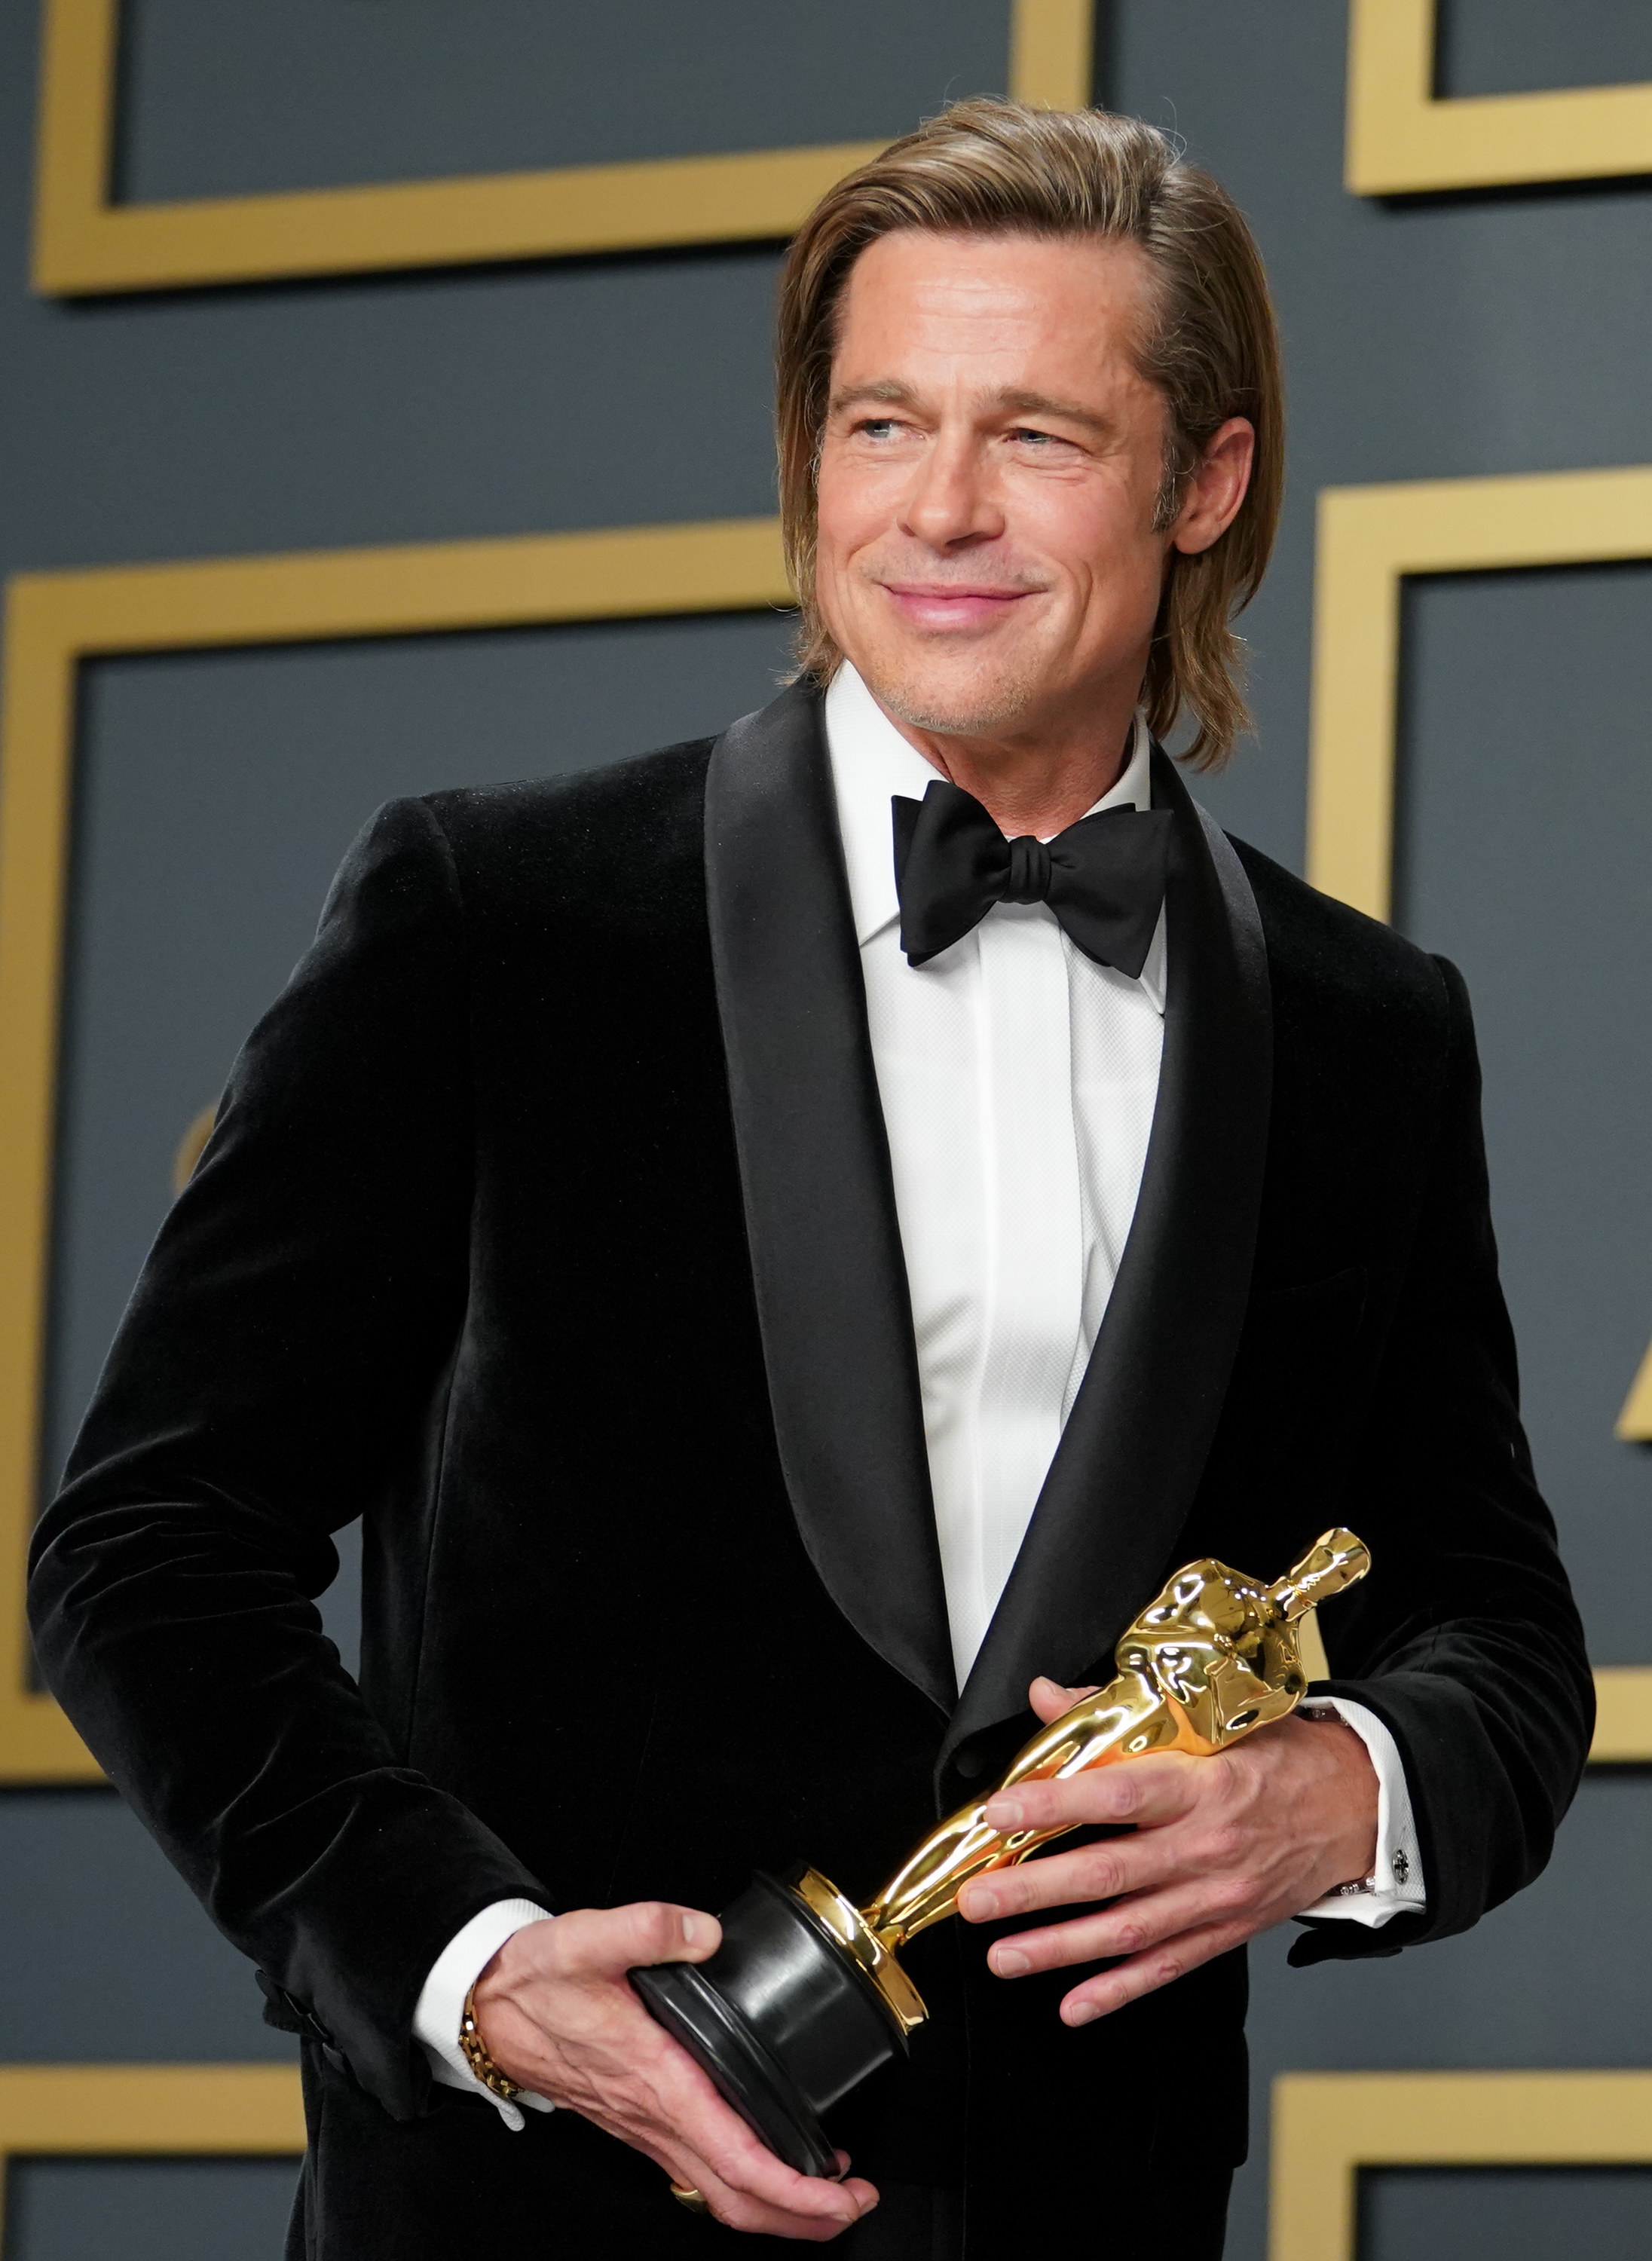 Brad Pitt posing with his Best Actor Oscar in 2020